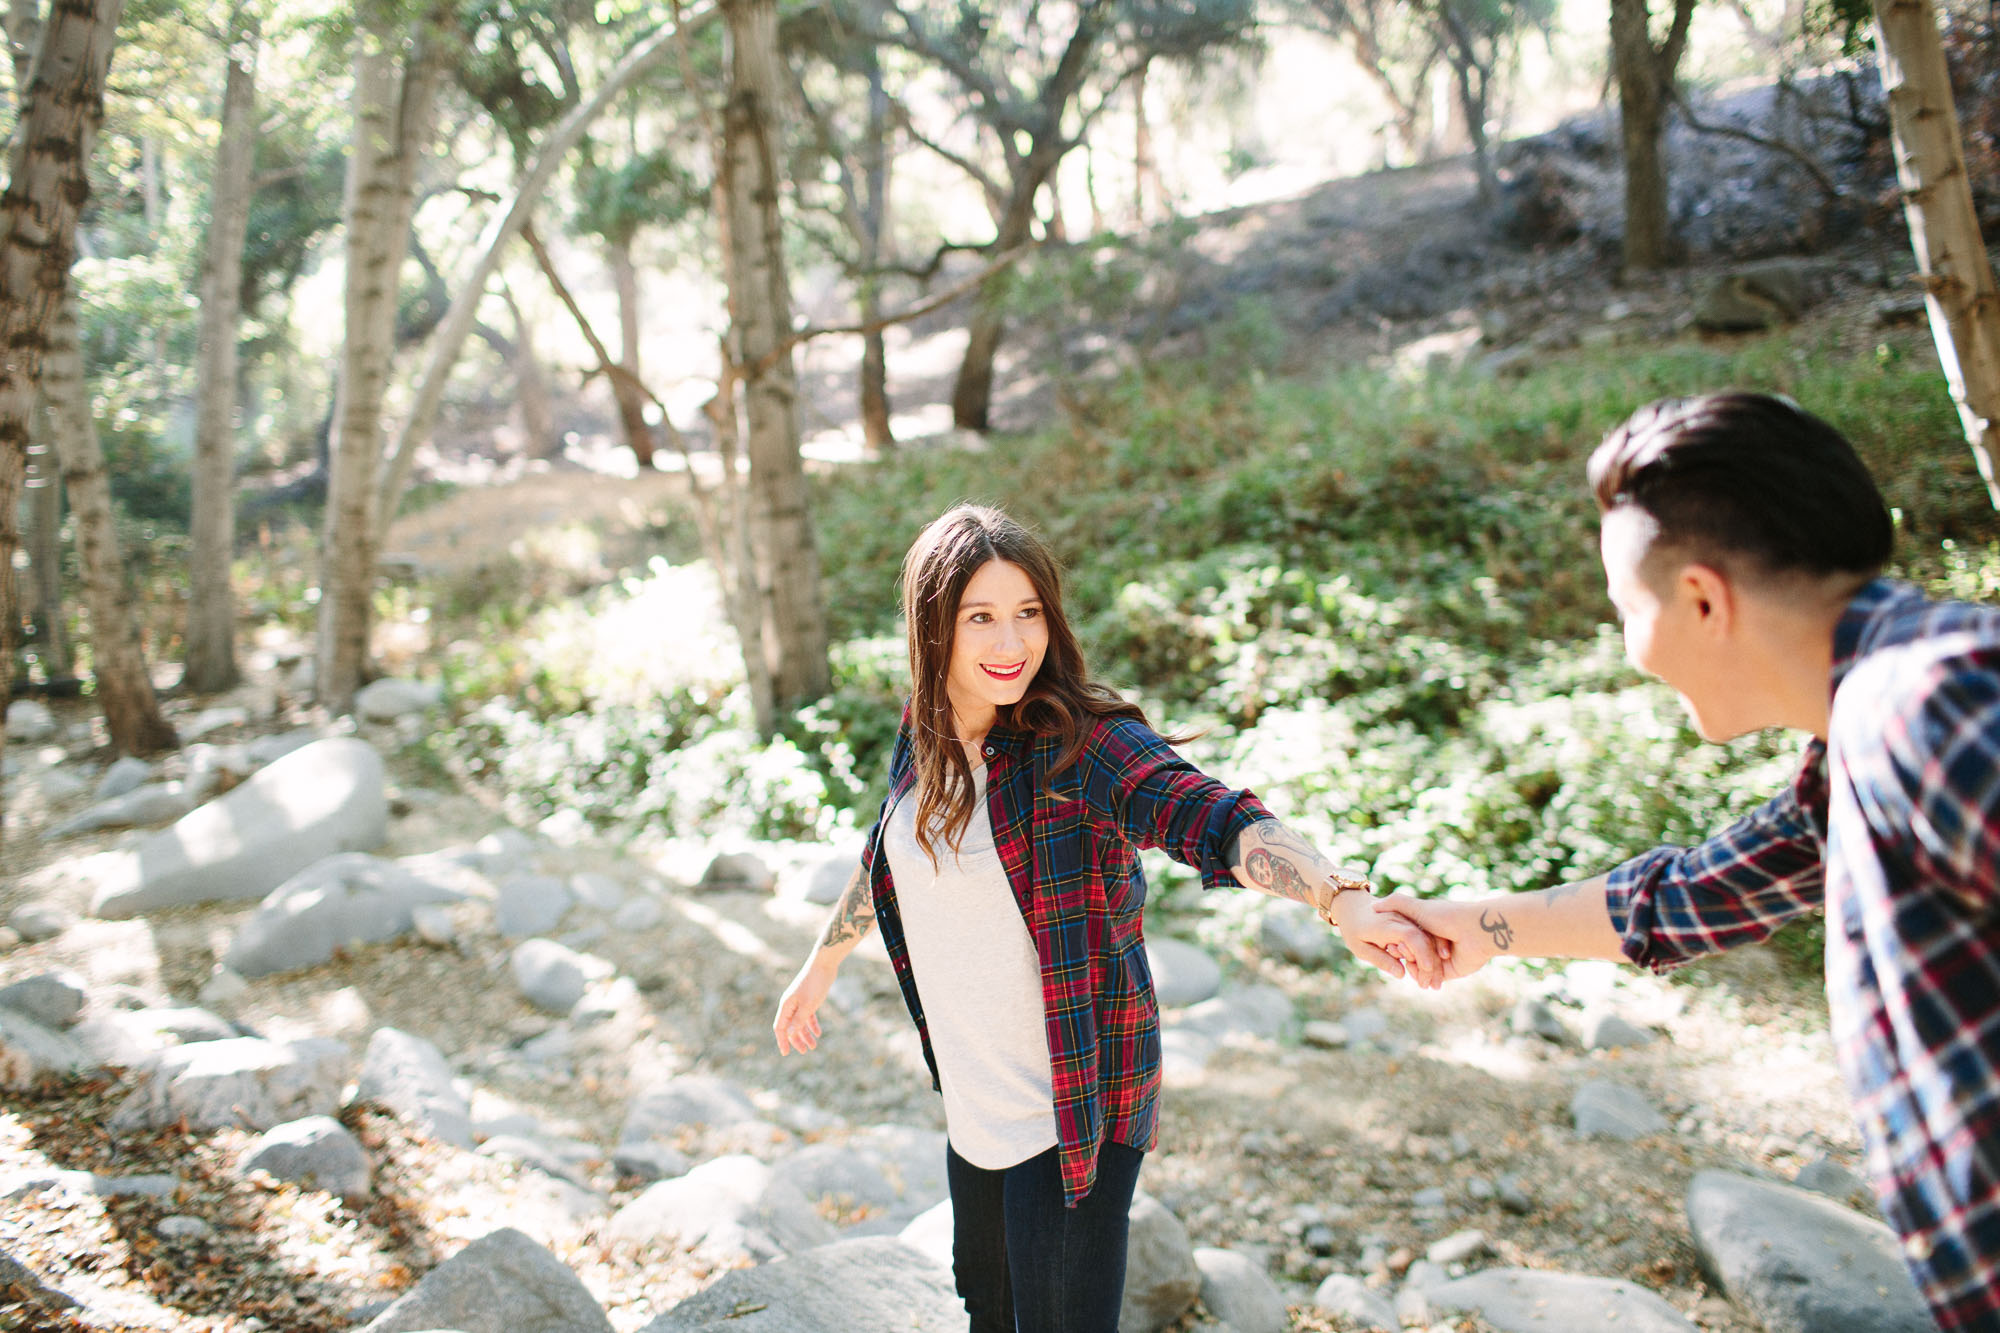 www-marycostaphotography-com-angeles-national-forest-engagement-0011